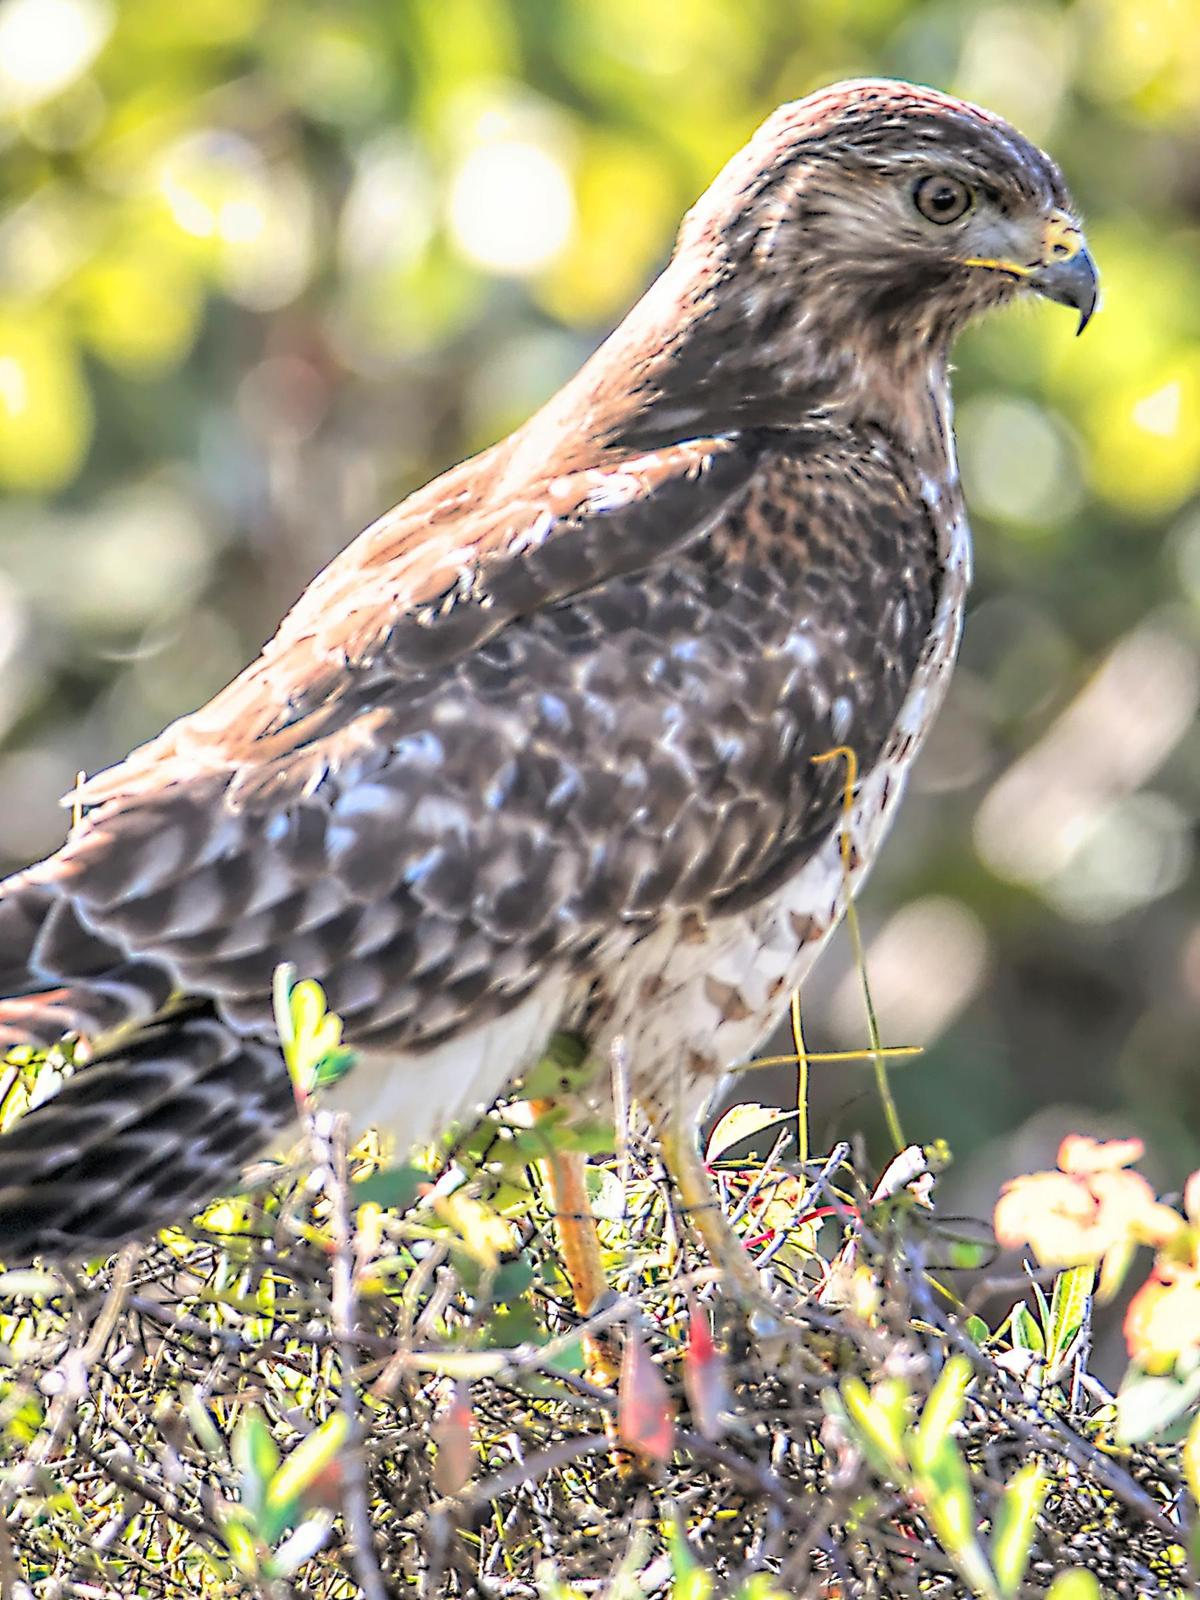 Red-shouldered Hawk Photo by Dan Tallman